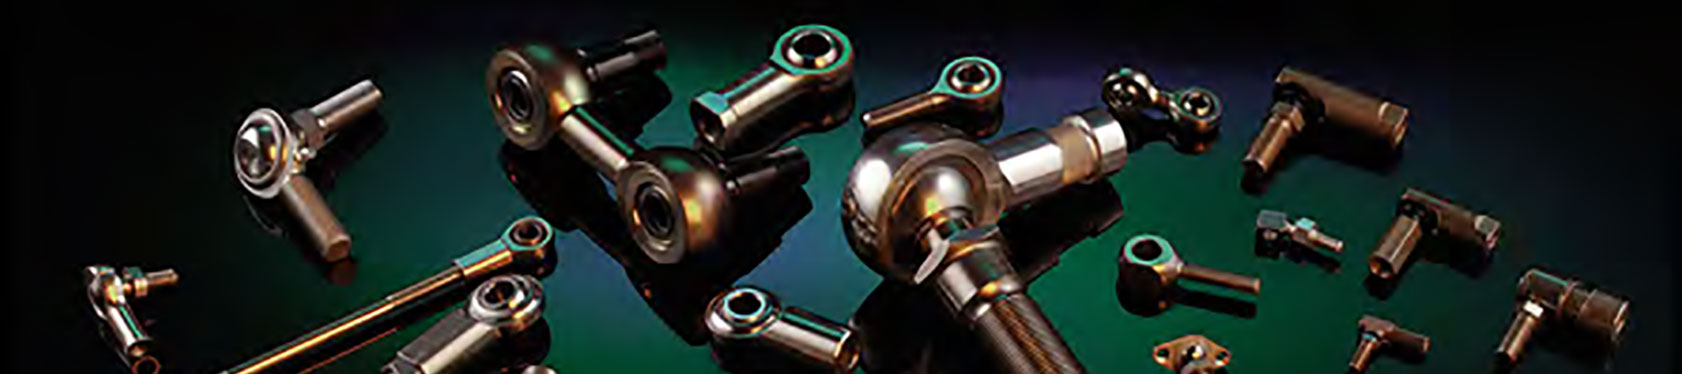 Cablecraft Linkages ball joints